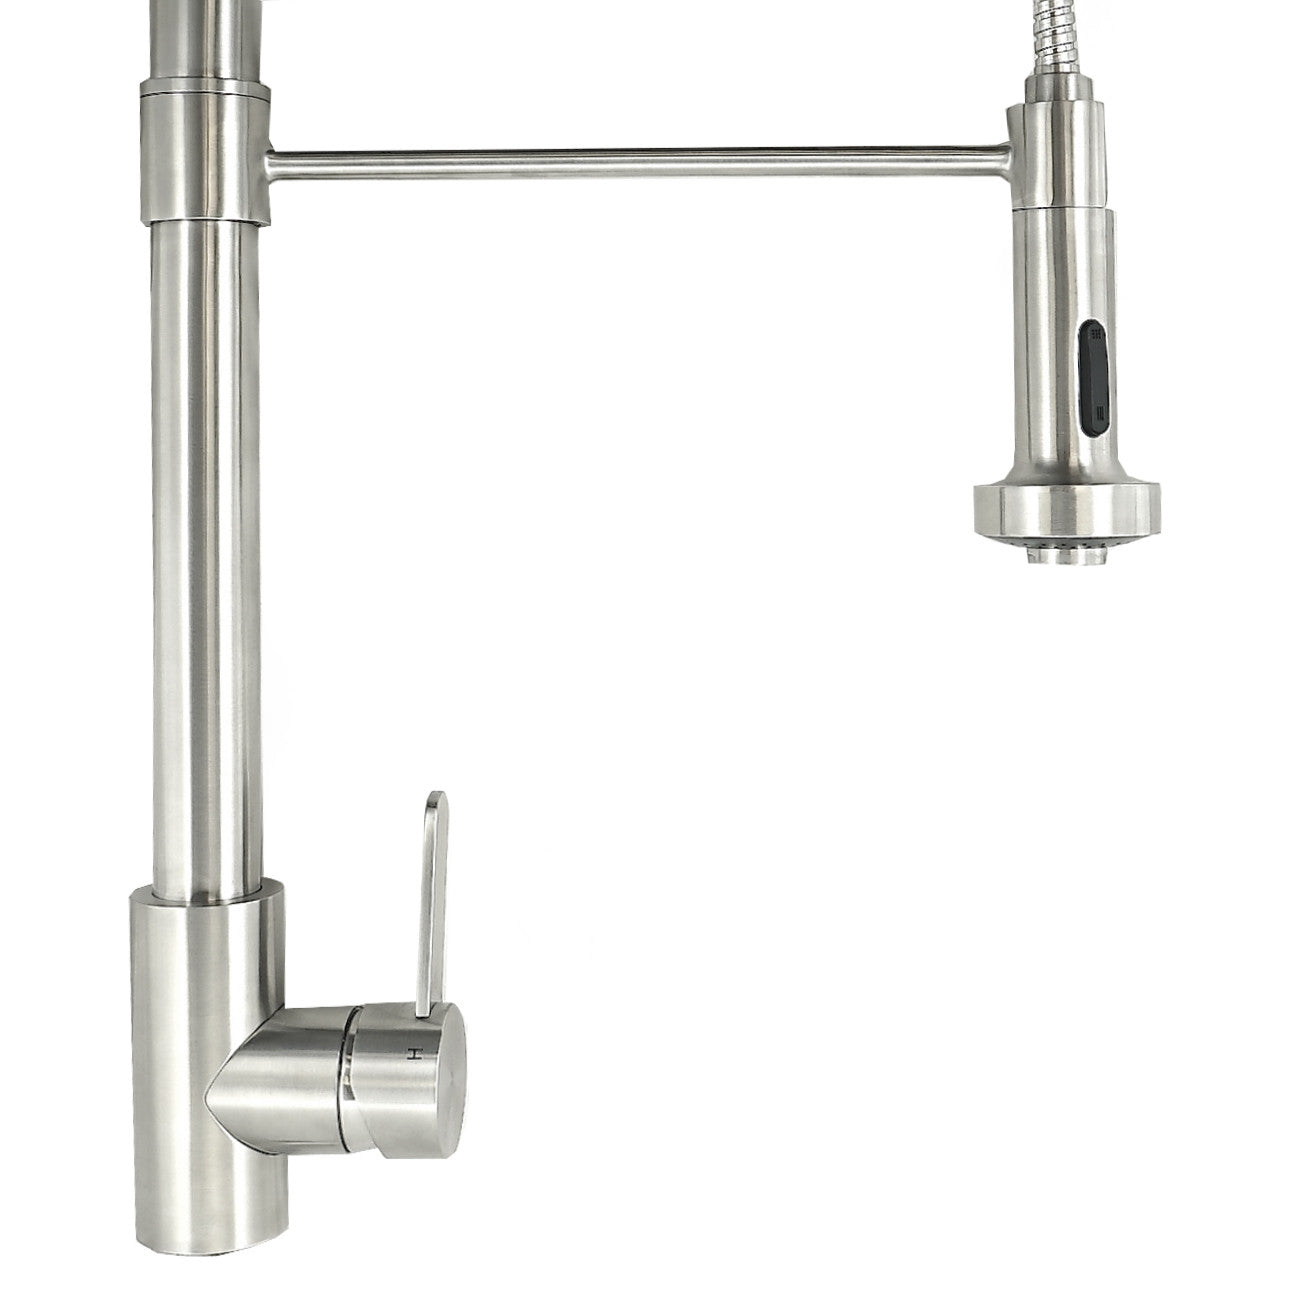 Stainless Steel Contemporary Spring-Style Kitchen Faucet